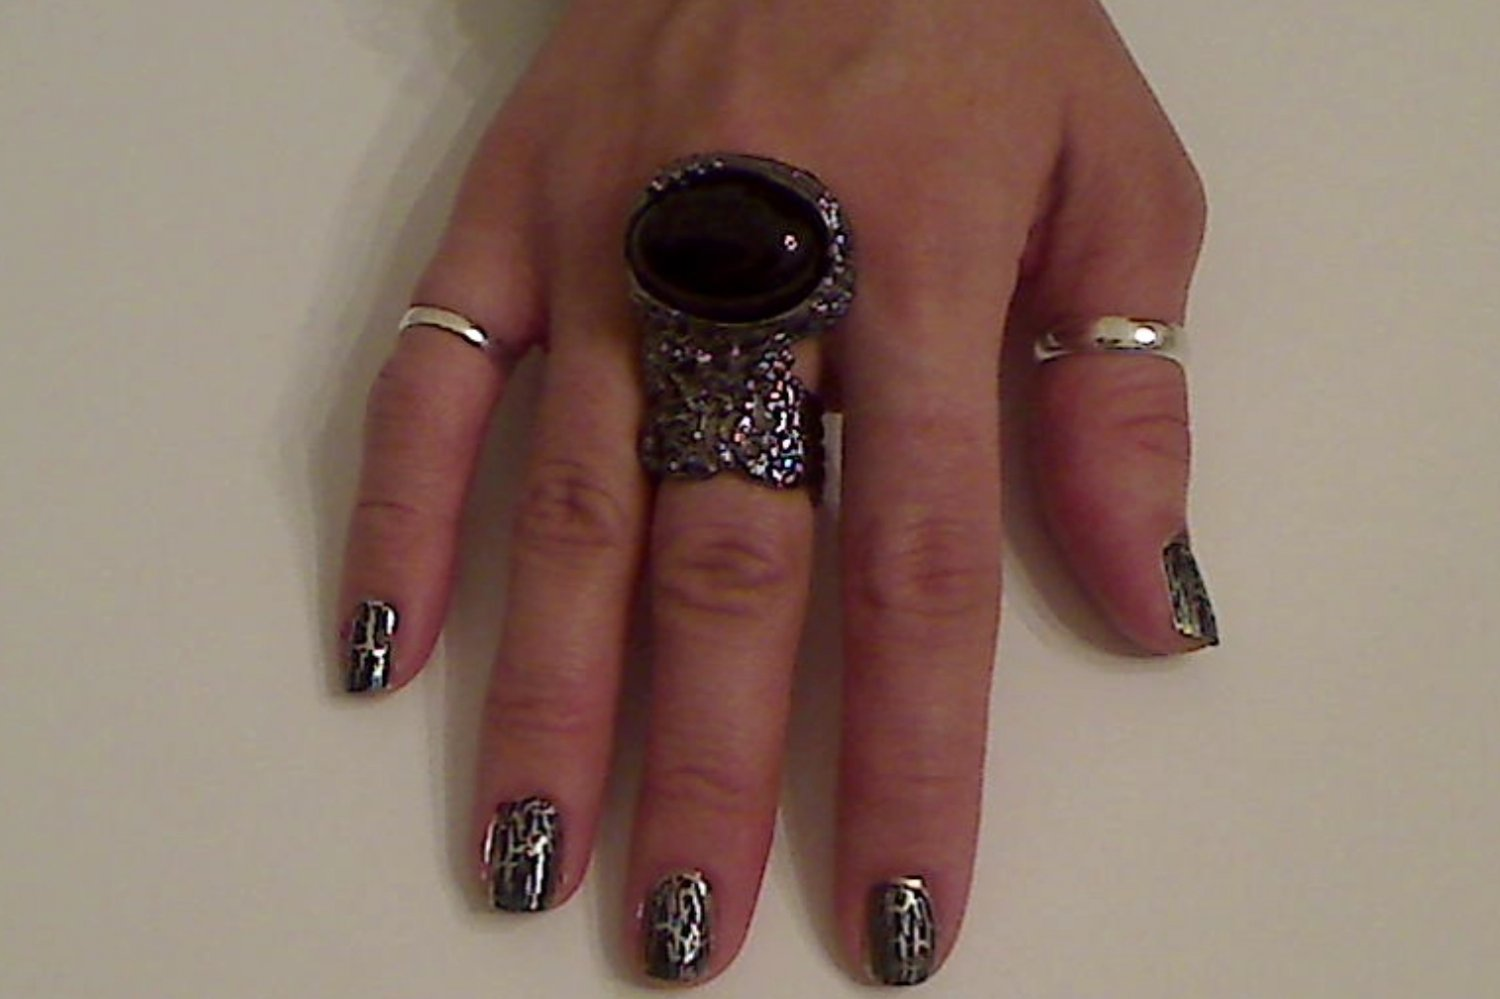 BLACK ARTY CHUNKY MOON KNUCKLE RING IN GUN METAL SIZES *6*7*8*9